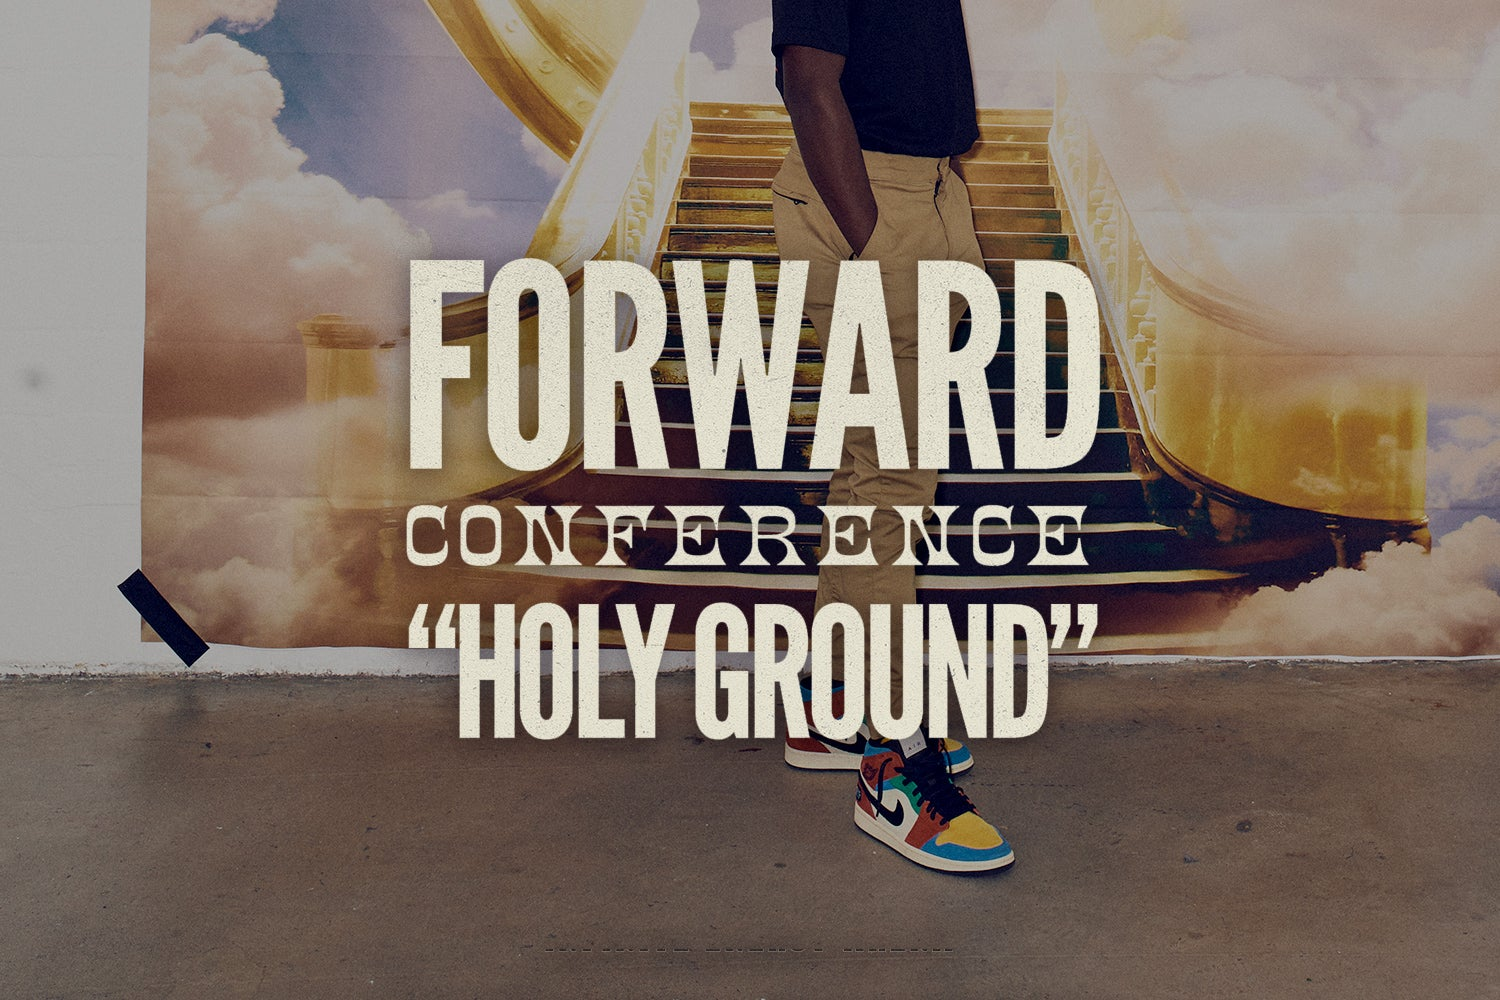 Free Chapel Forward Conference